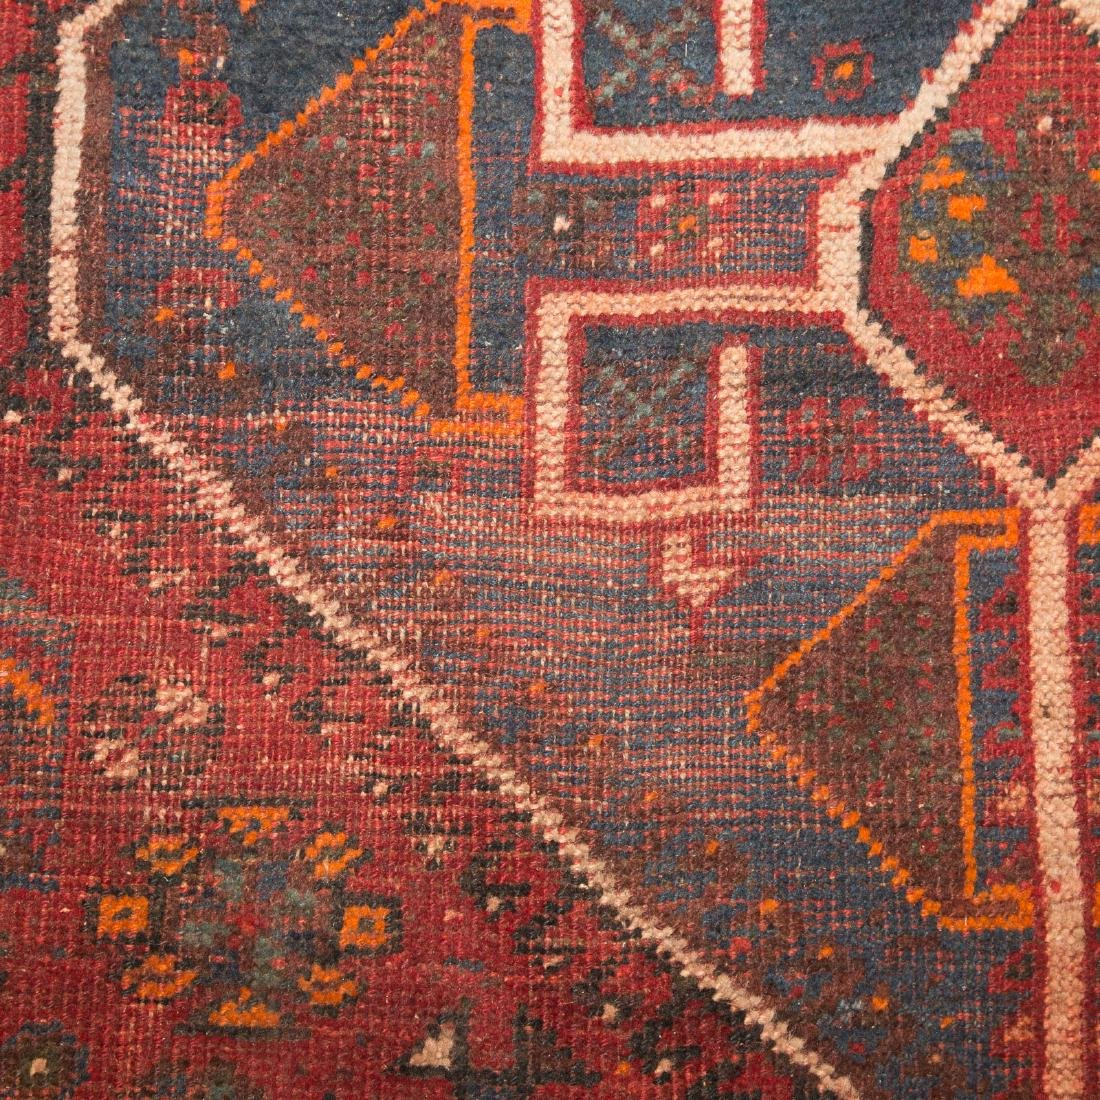 Antique Shiraz rug, approx. 7.8 x 10.4 - 5